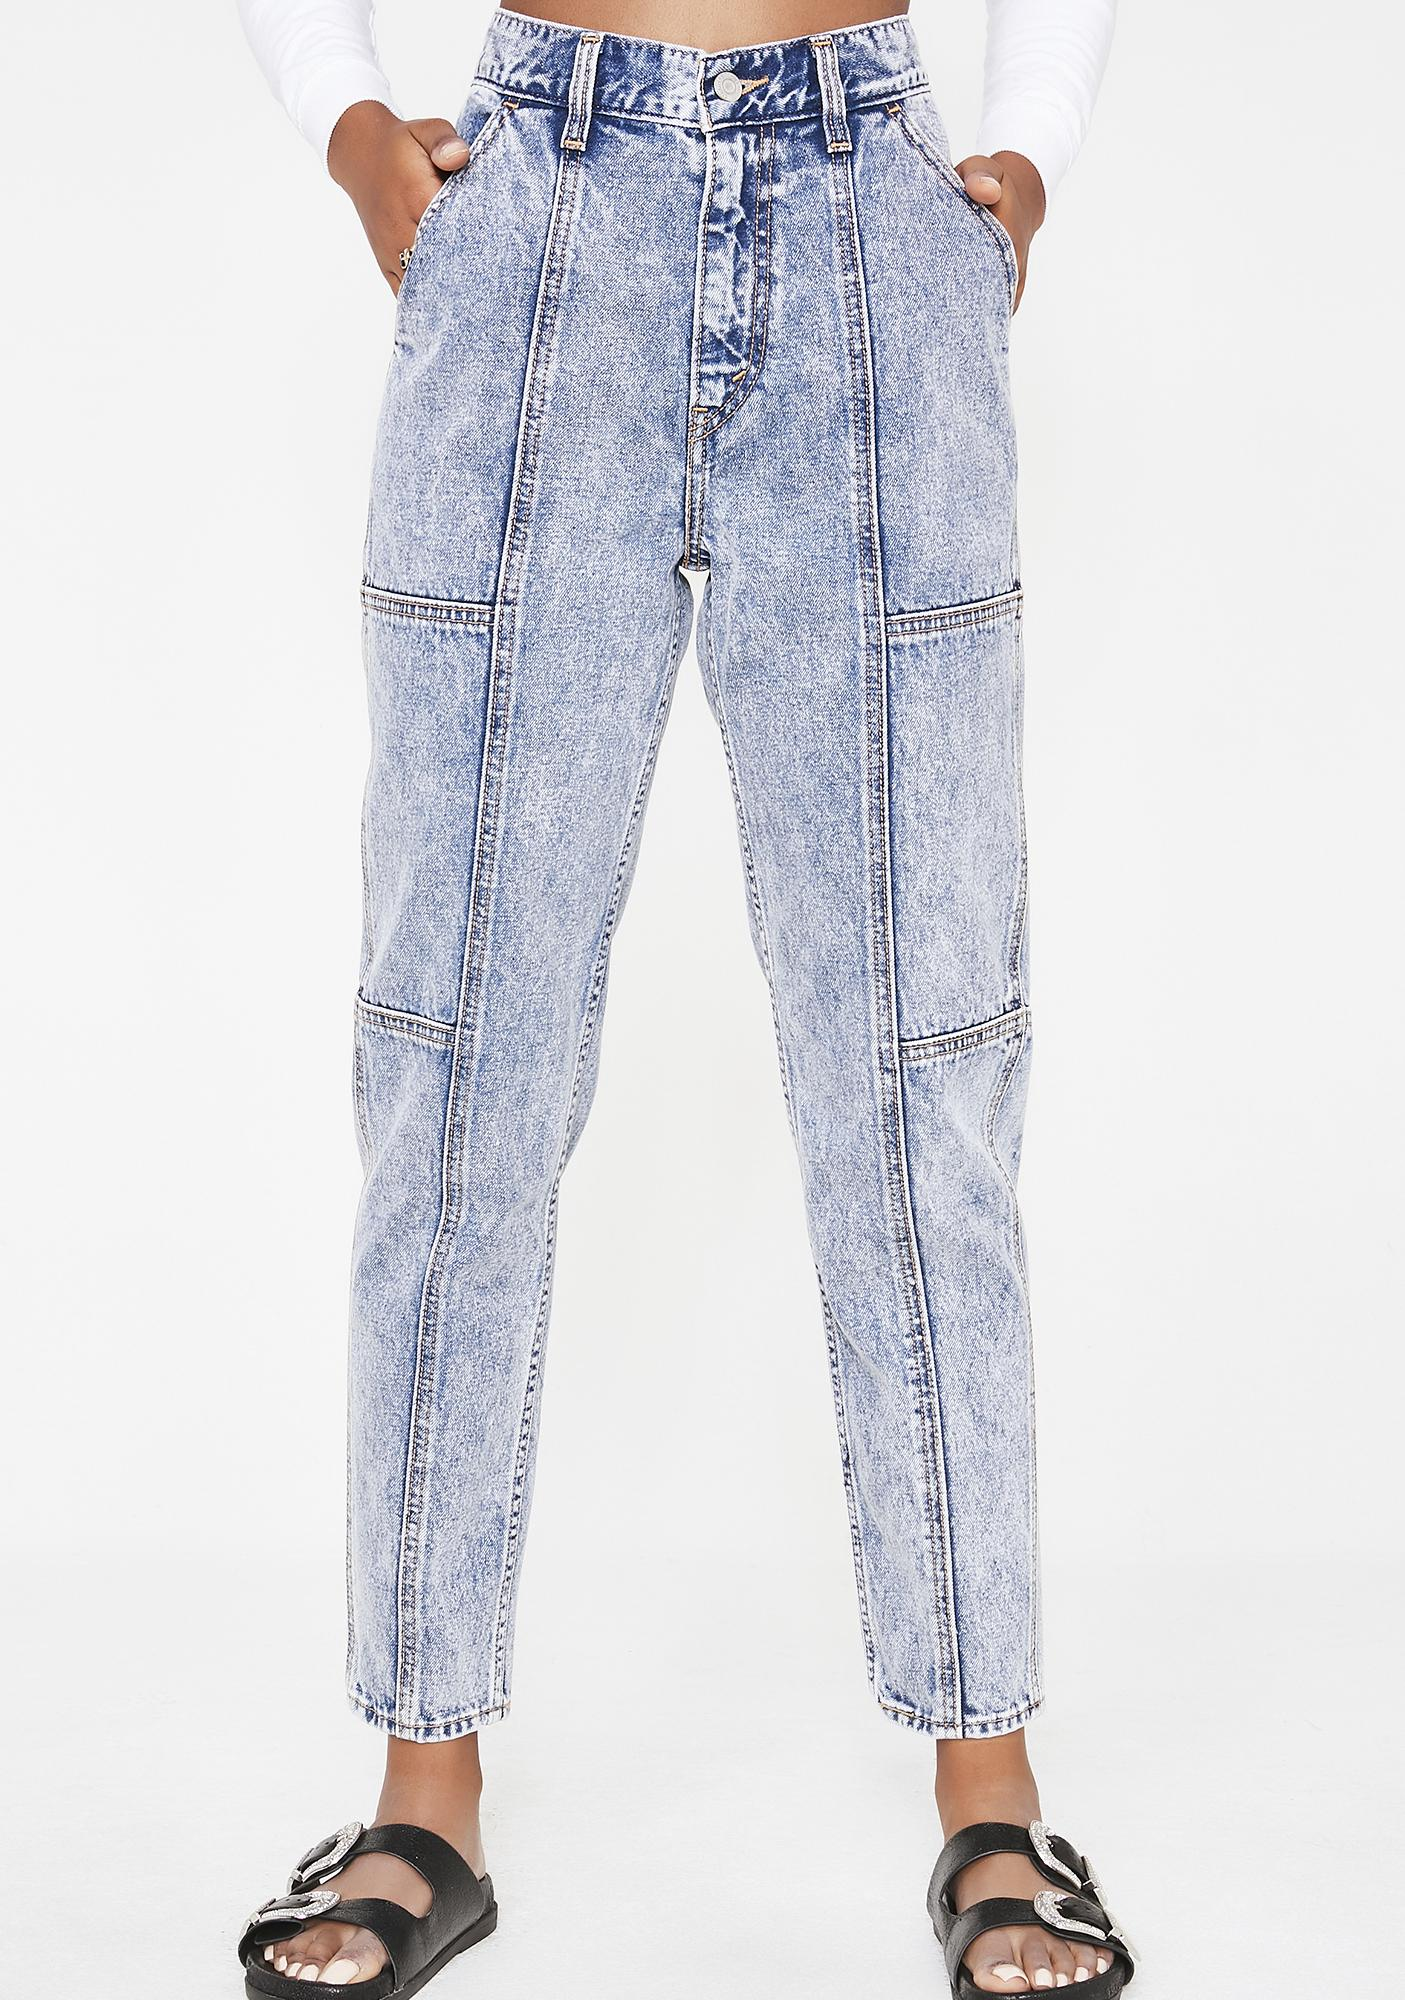 Jeans Levis Utility Mom Jeans